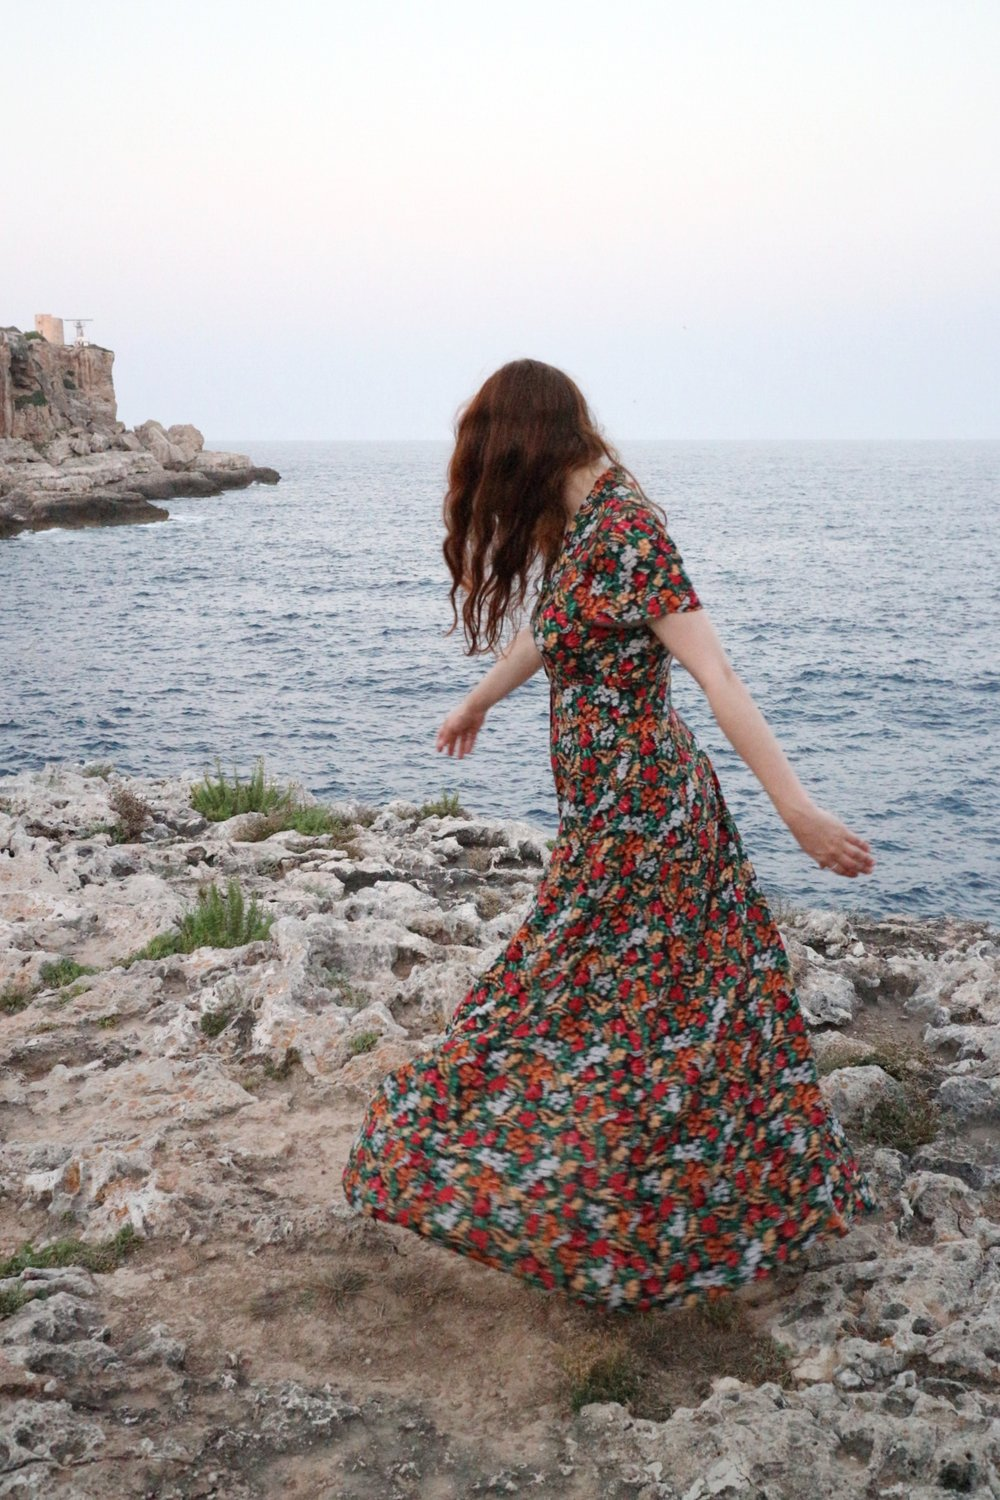 Girl dancing on cliffs